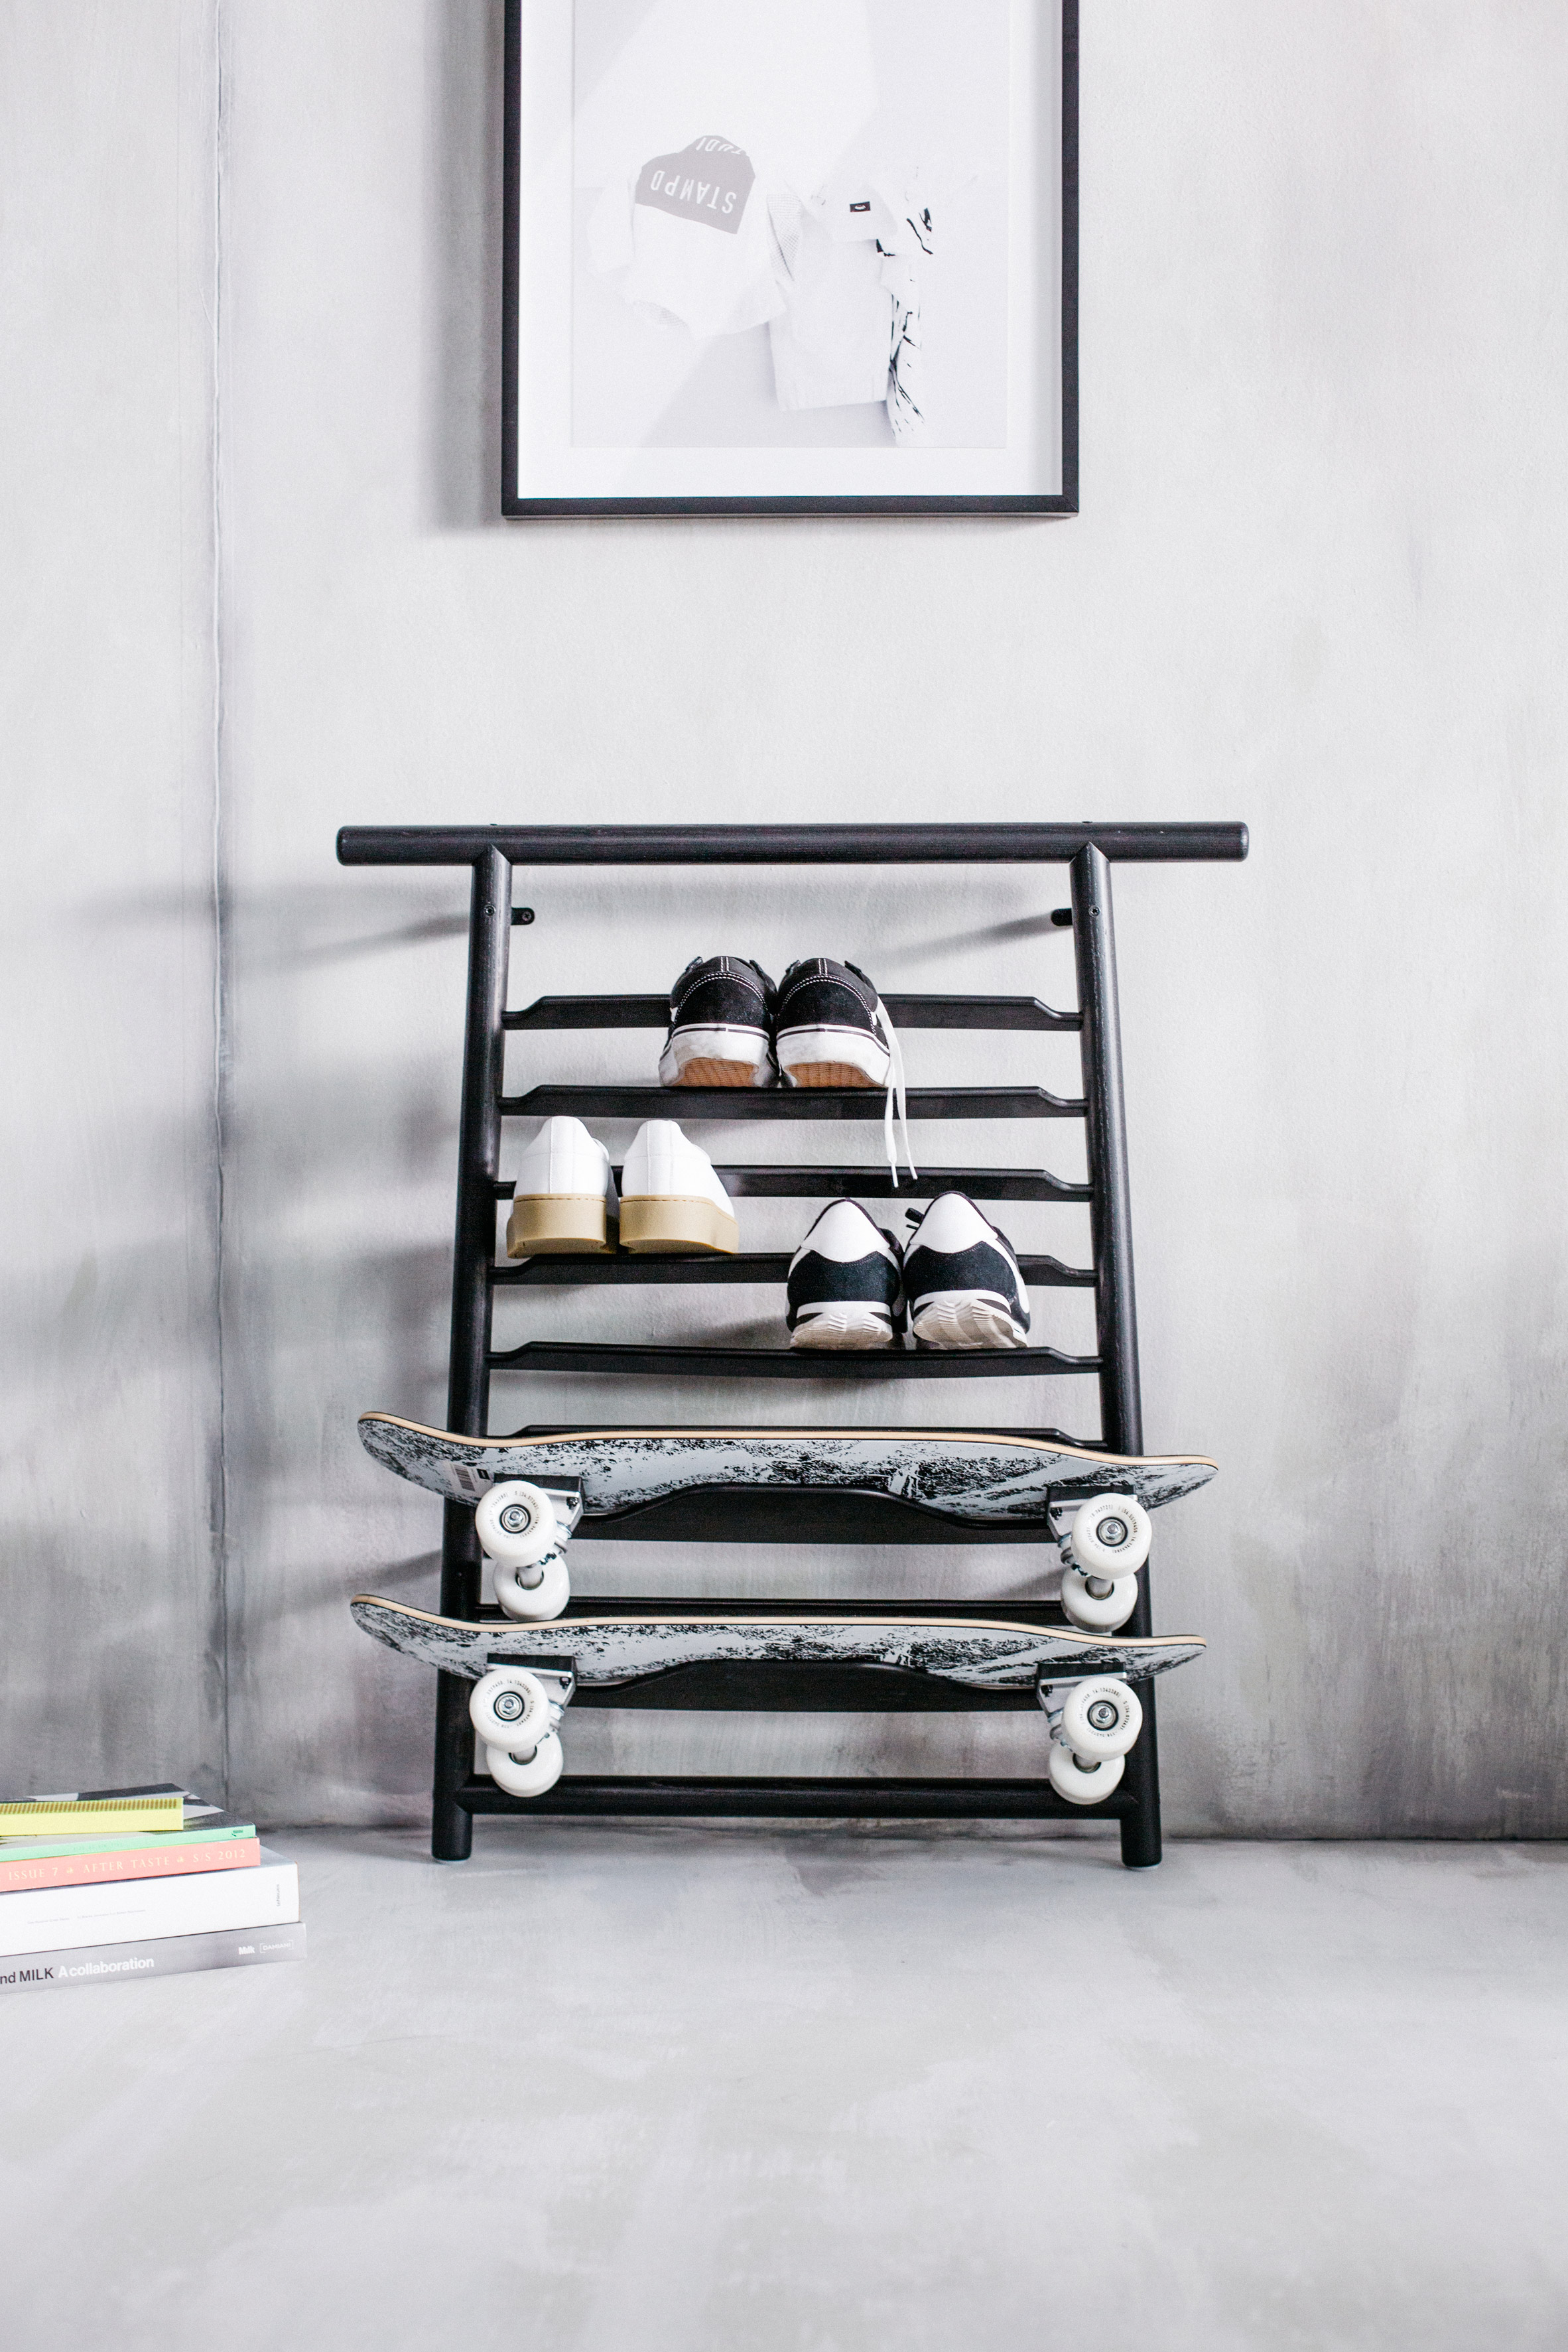 IKEA releases first skateboard among SoCal-inspired collection